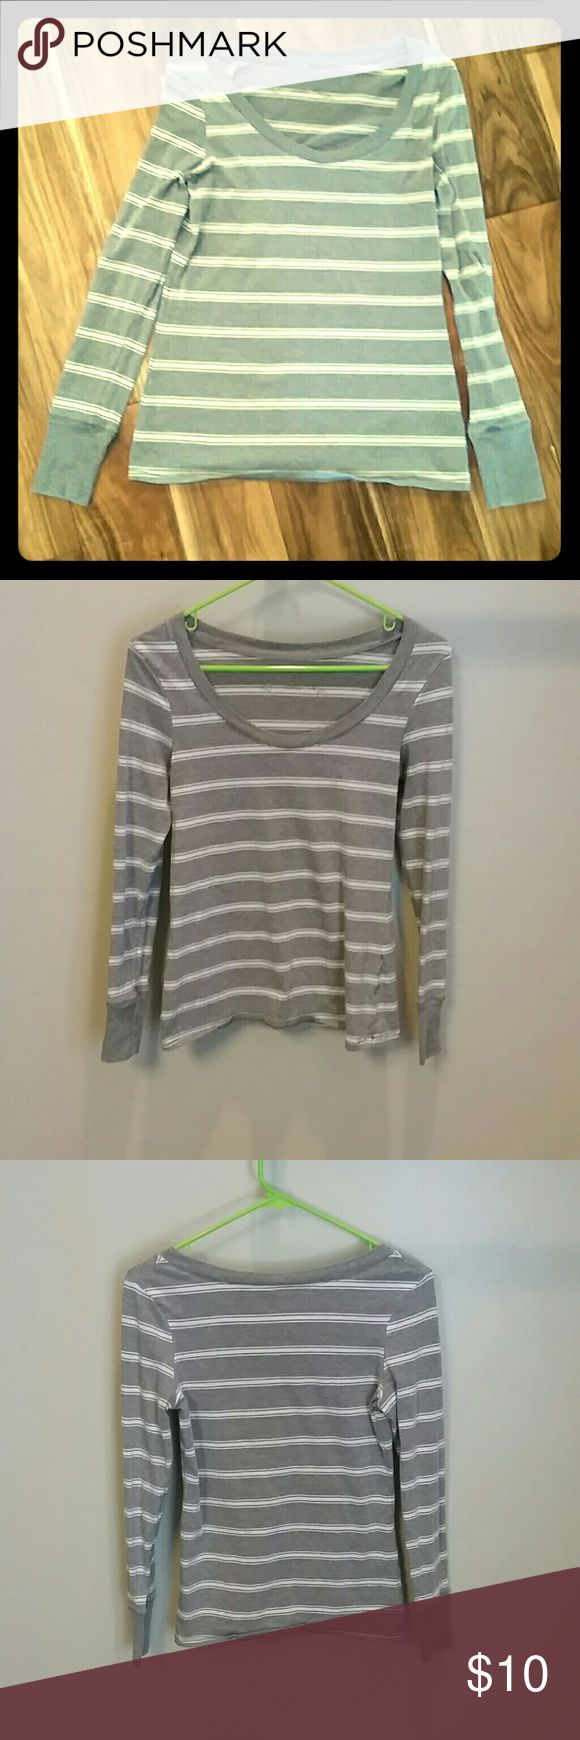 Size medium women's striped long sleeve shirt Size medium long sleeve women's shirt. Gently used with no holes or stains. Pair with a vest and/or long colorful necklace for a fun, stylish outfit. Tops Tees - Long Sleeve